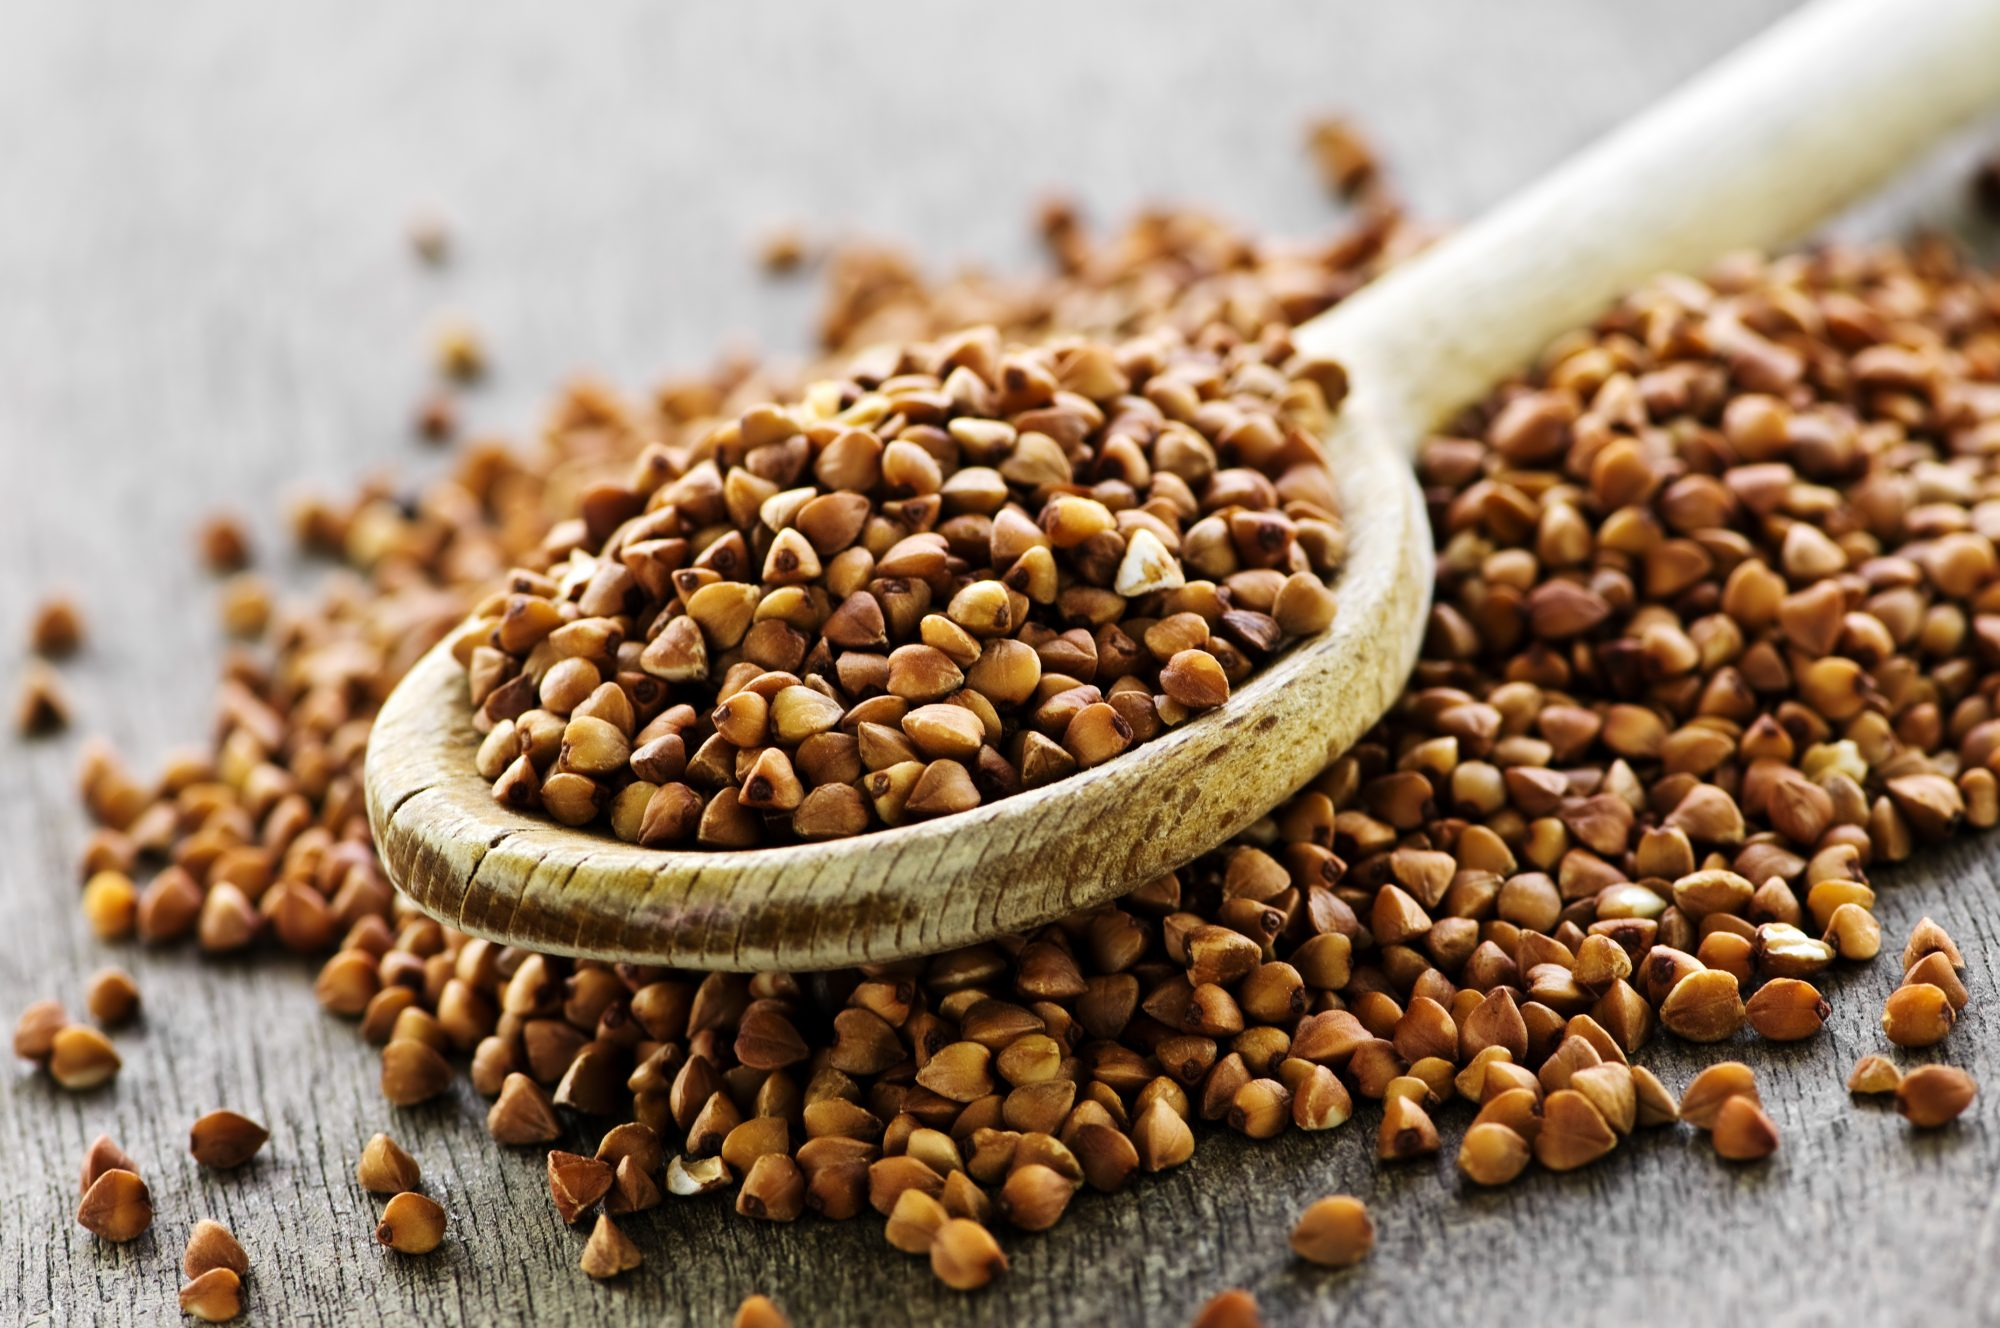 What Are Buckwheat Groats and How Do I Use Them?